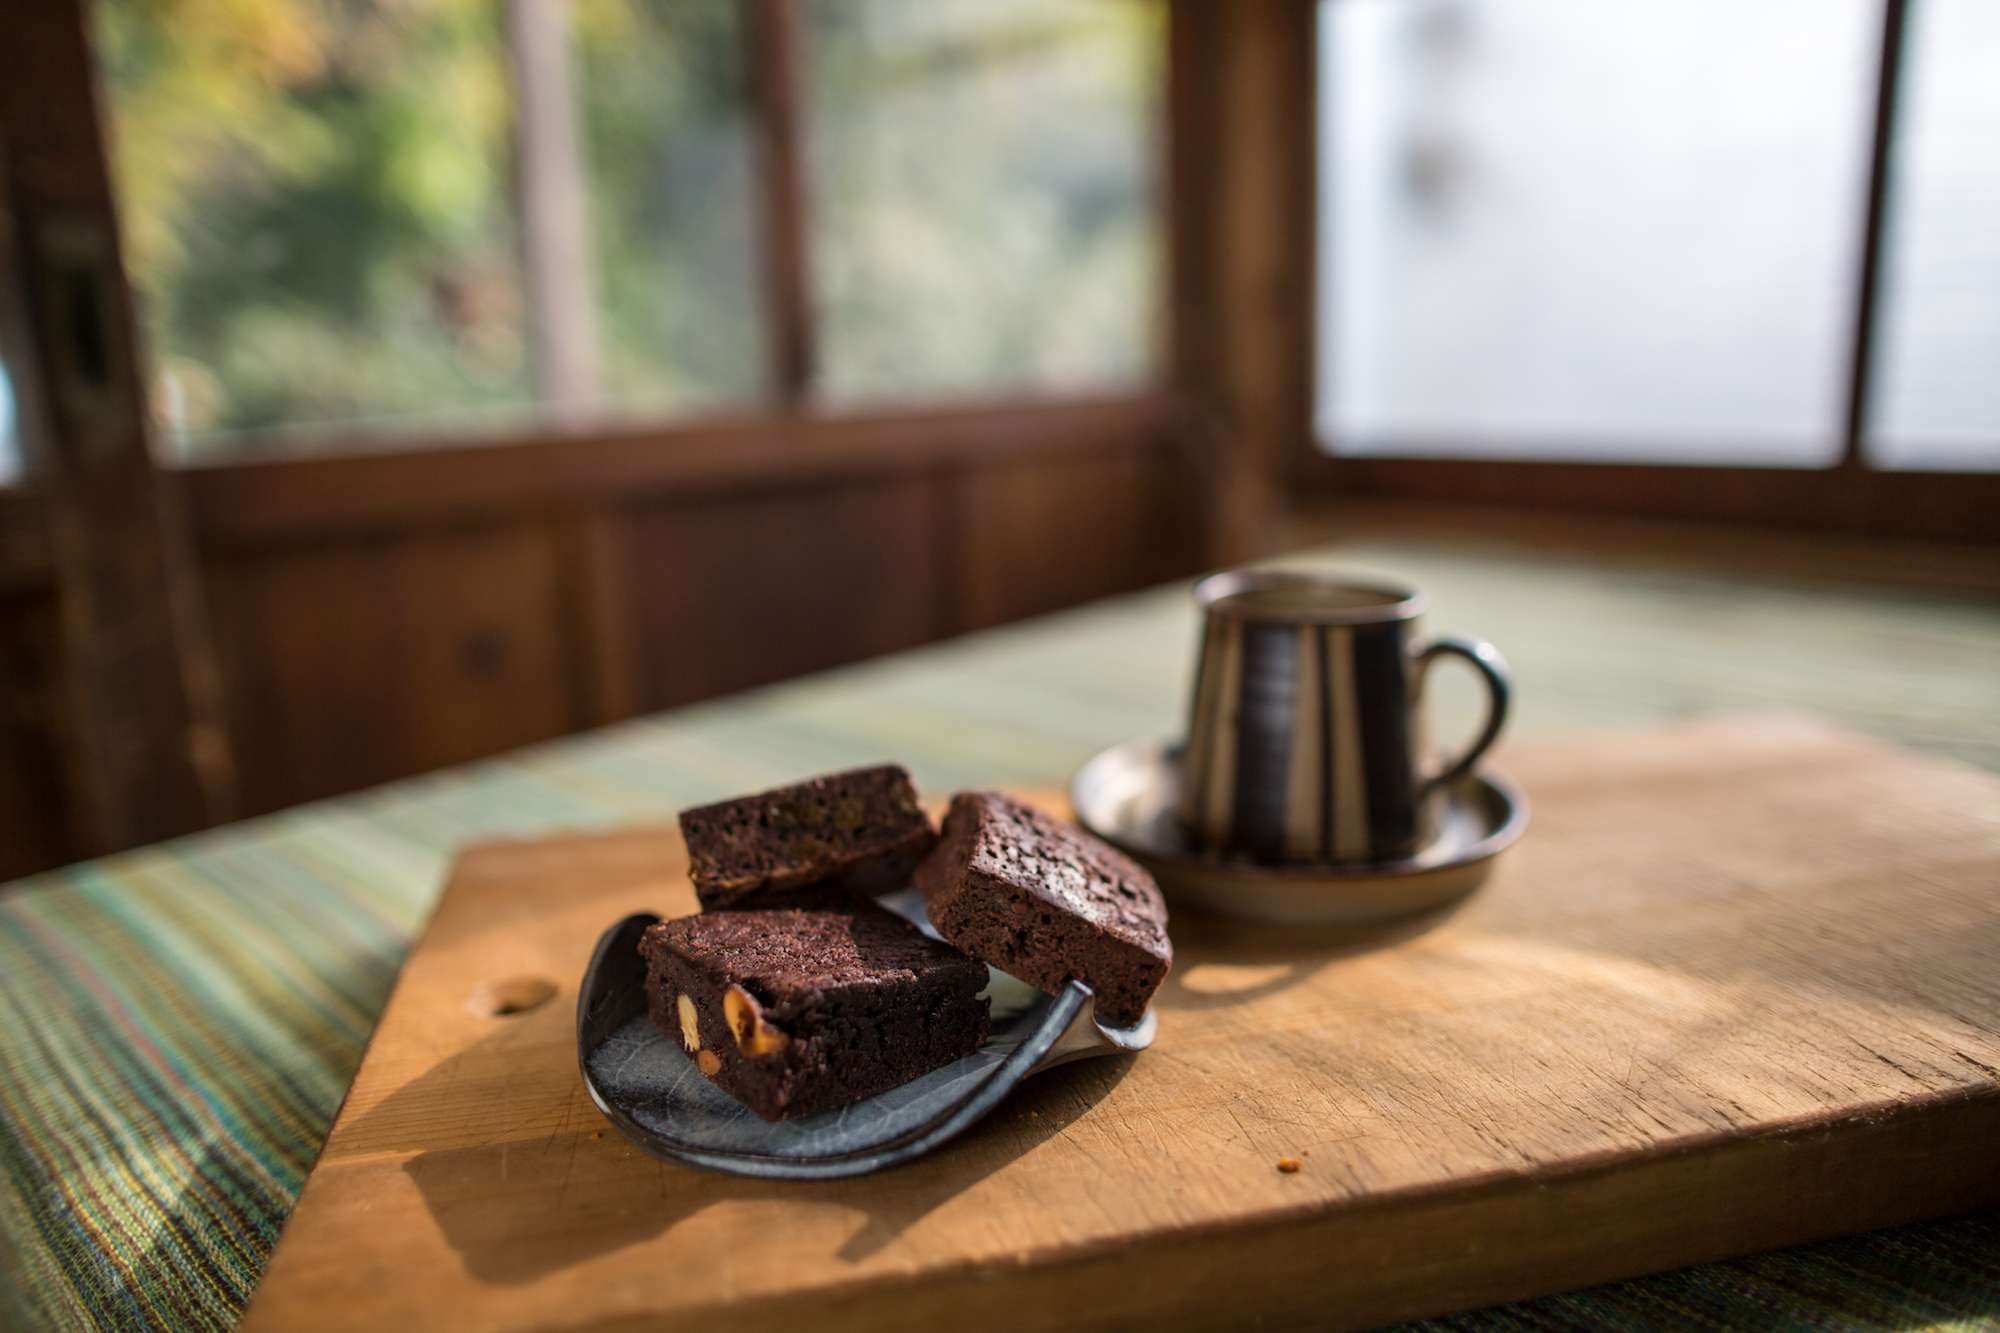 Gluten free brownies on a plate